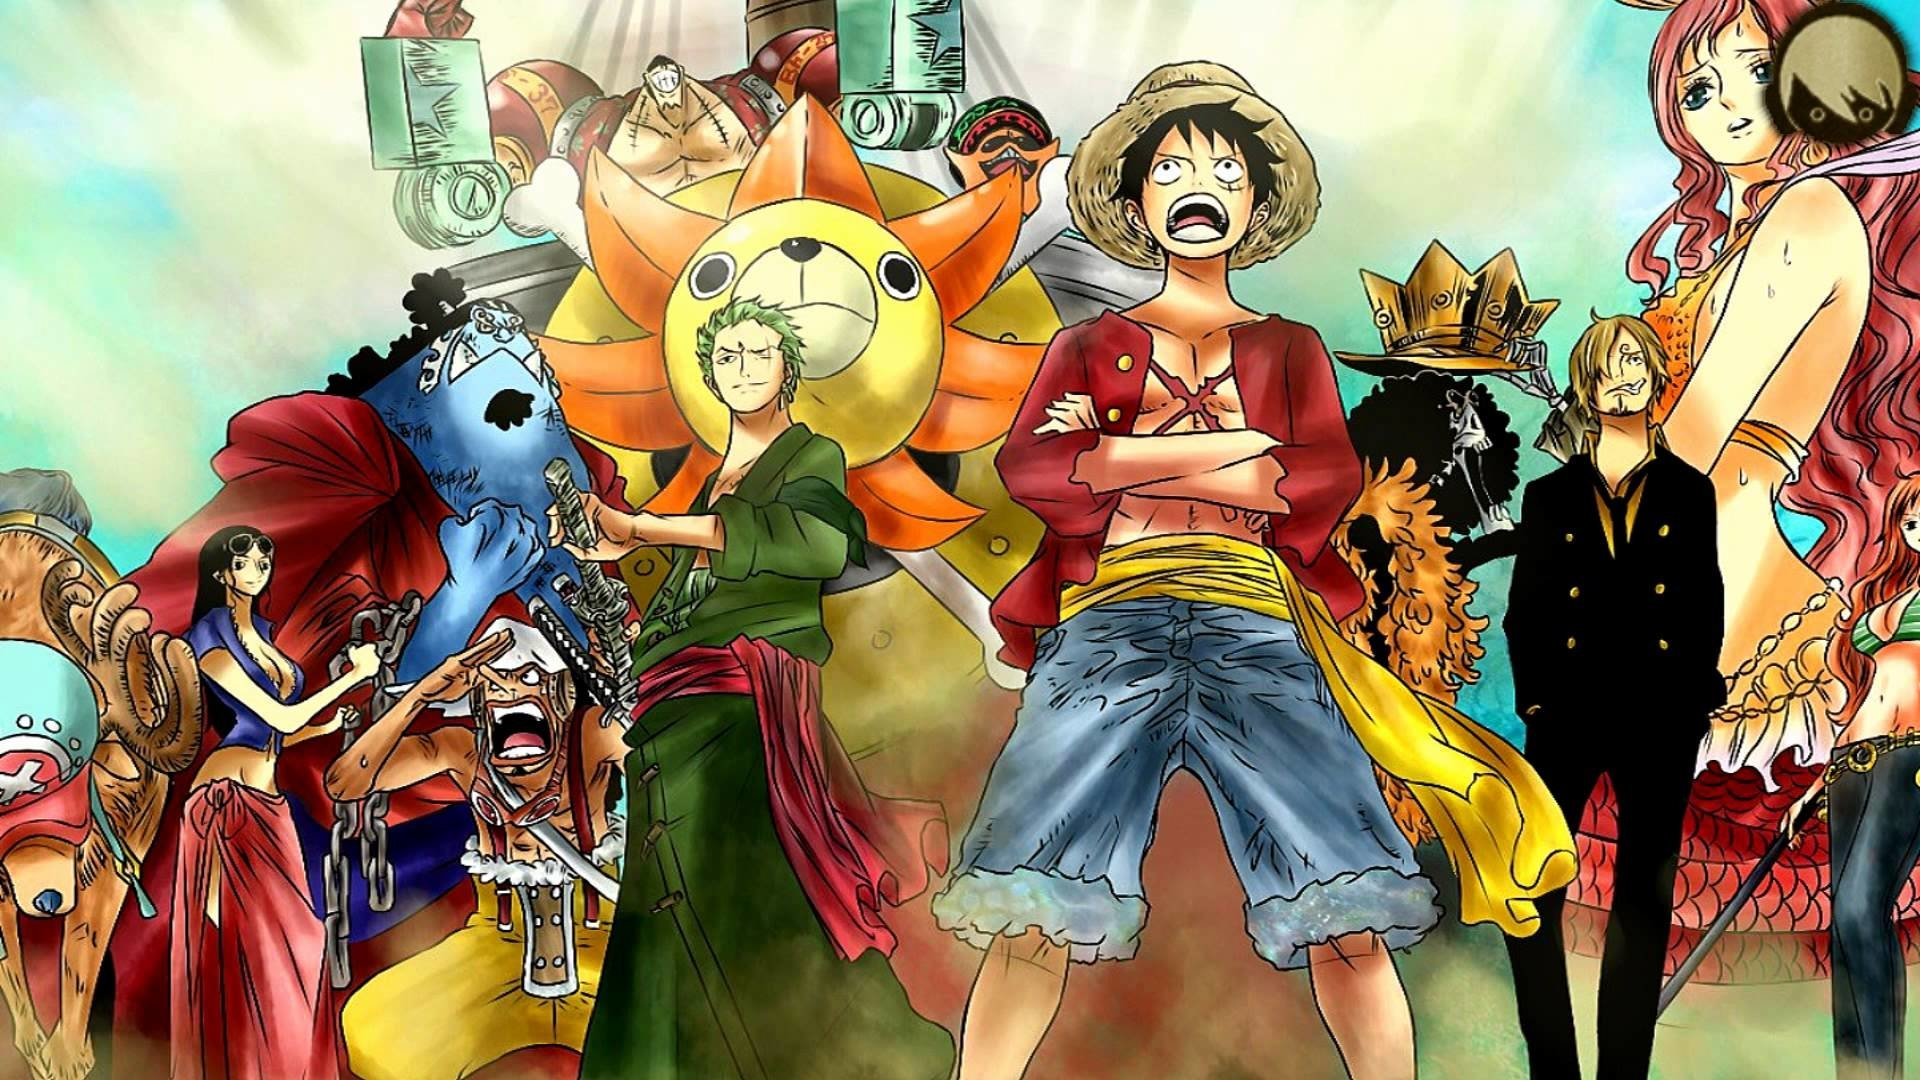 One Piece Chapter 973 Release Date, Spoilers Straw Hats and Scabbards Reunite as Wano Act 4 Starts